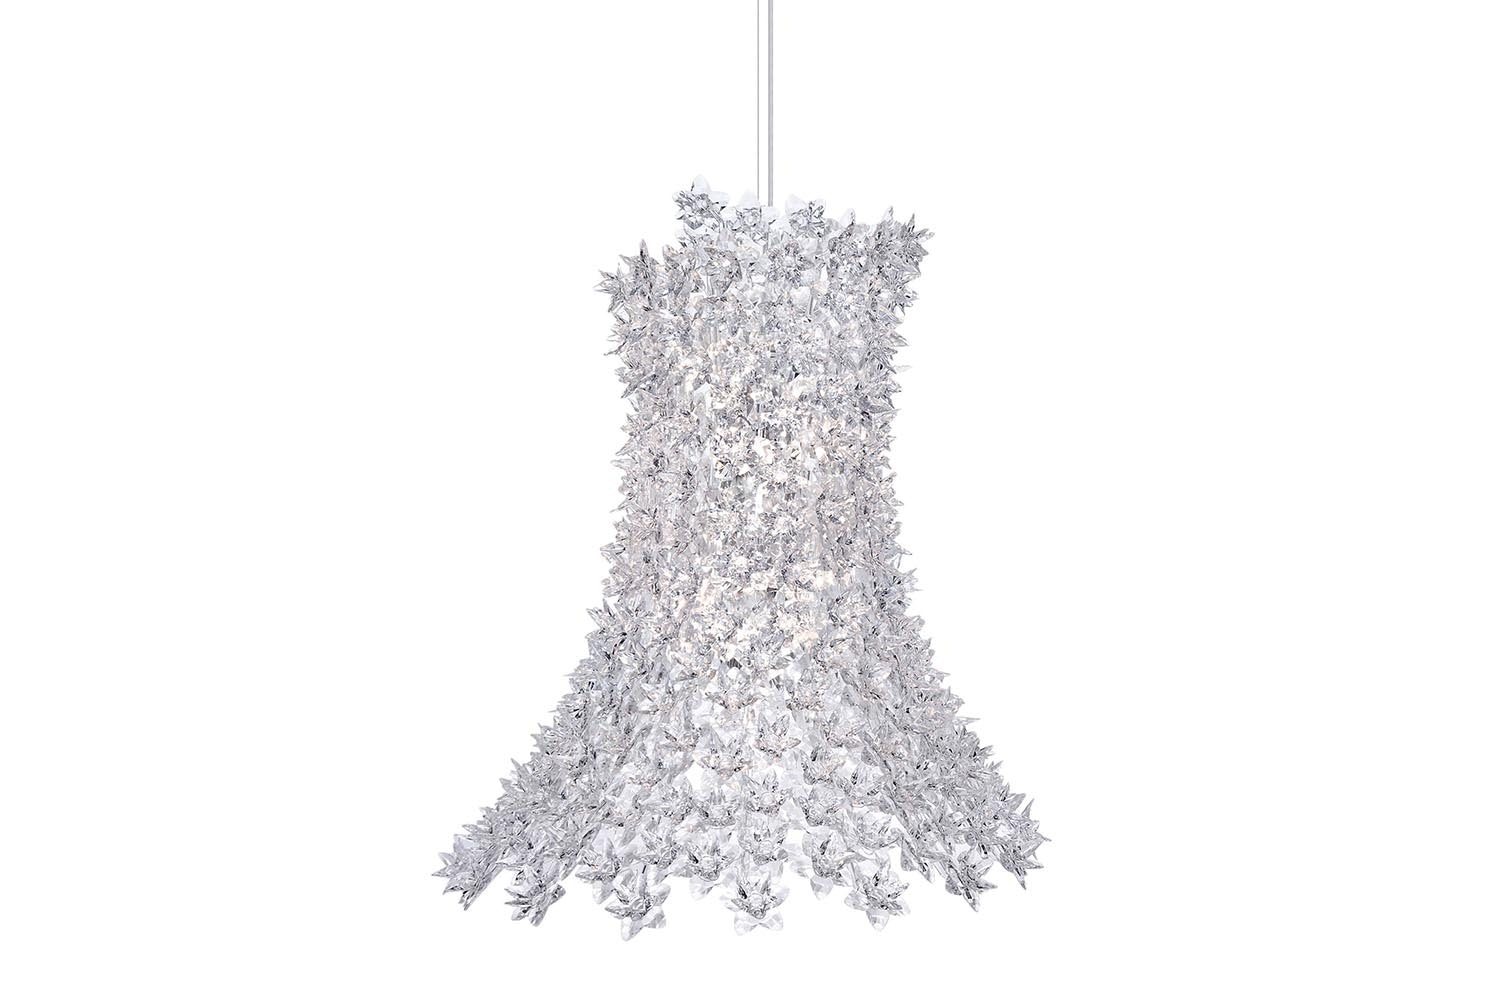 Bloom Suspension Lamp by Ferruccio Laviani for Kartell